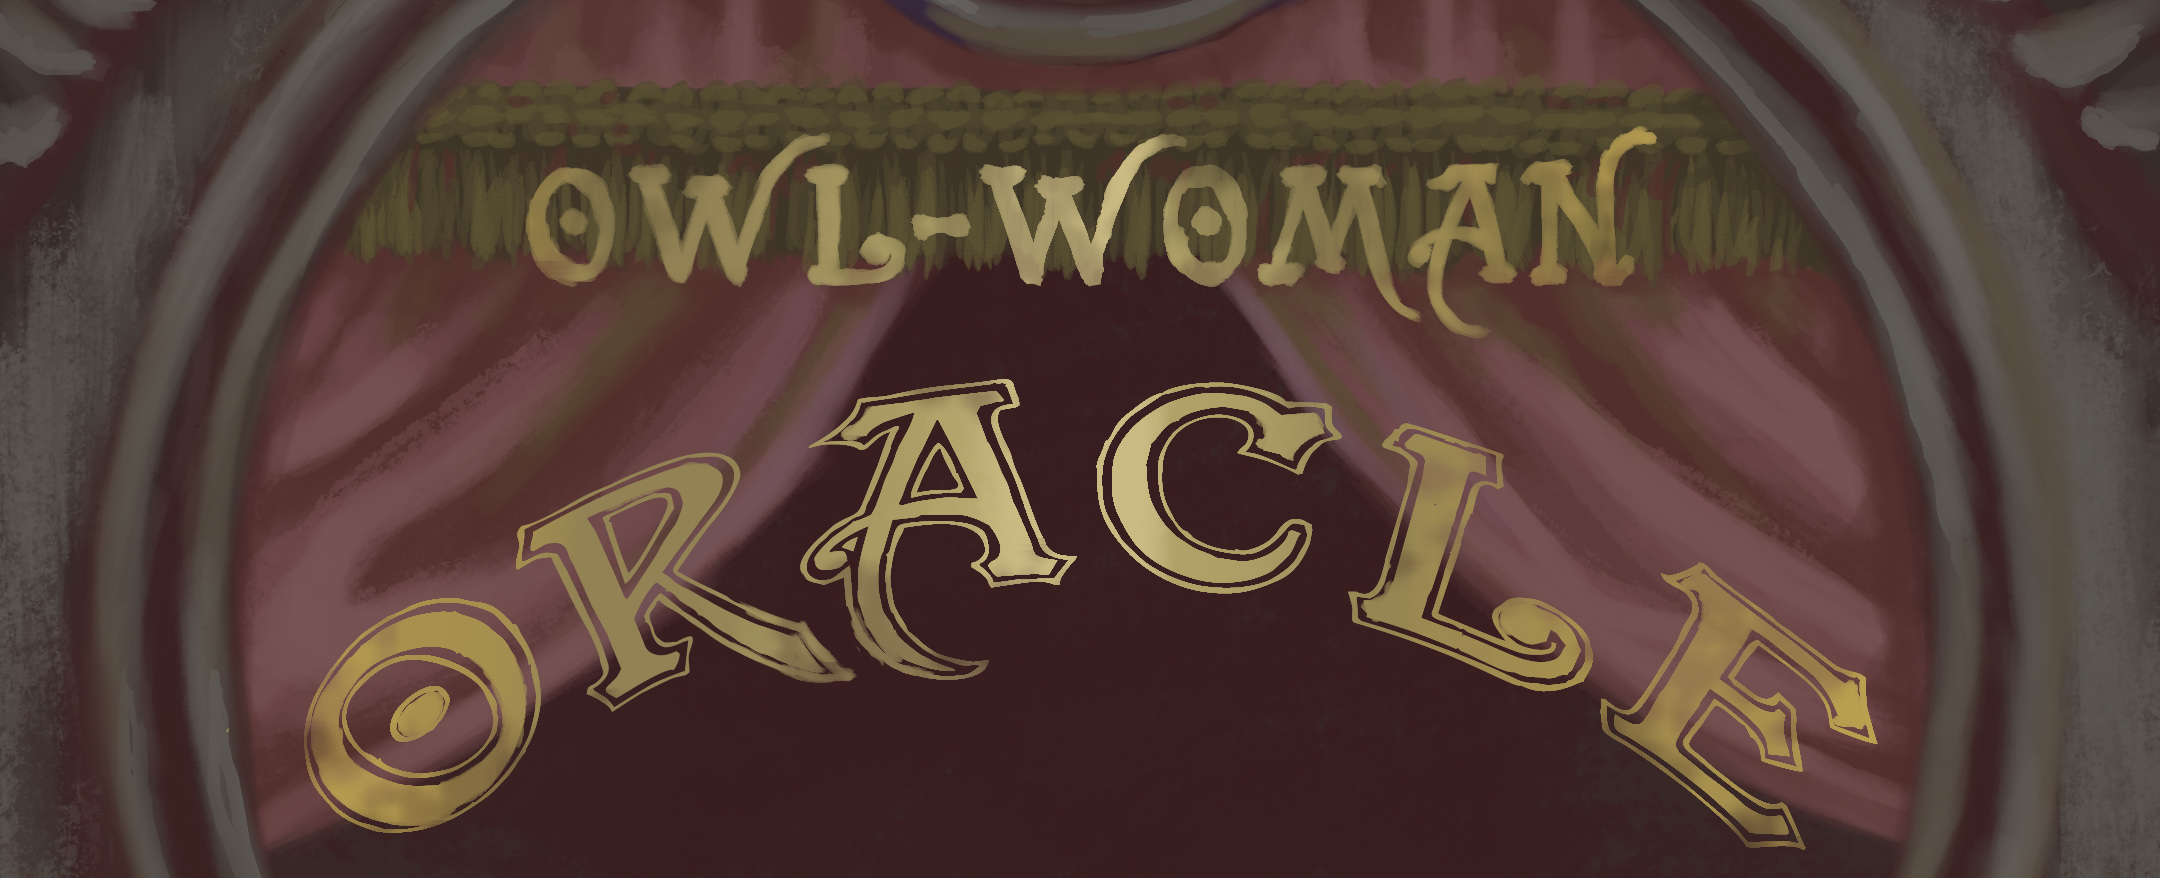 The Owl-Woman Oracle